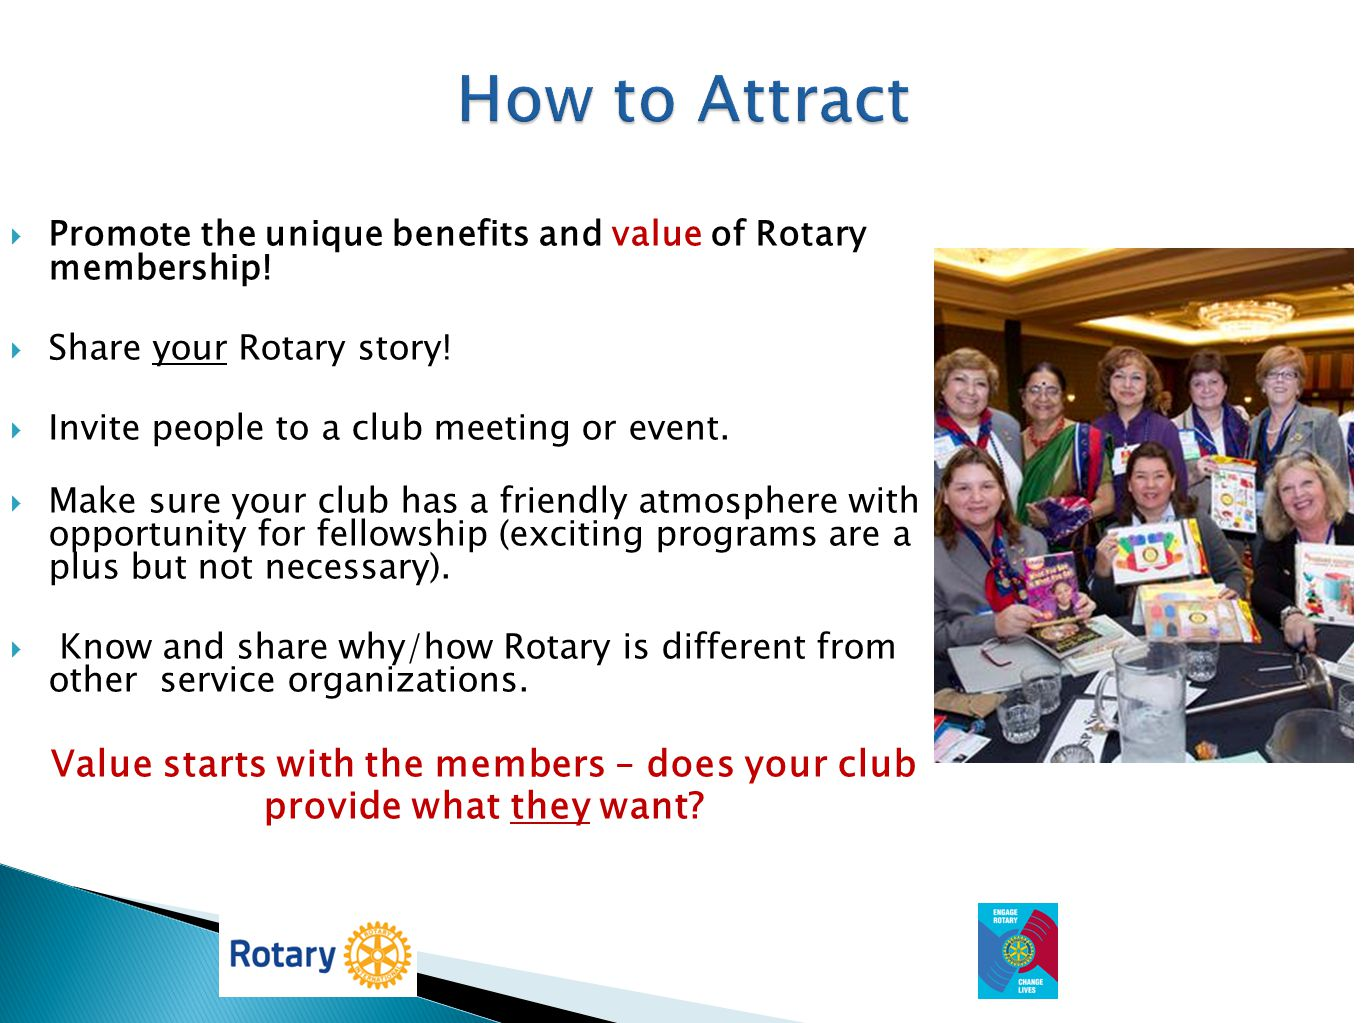 Value starts with the members – does your club